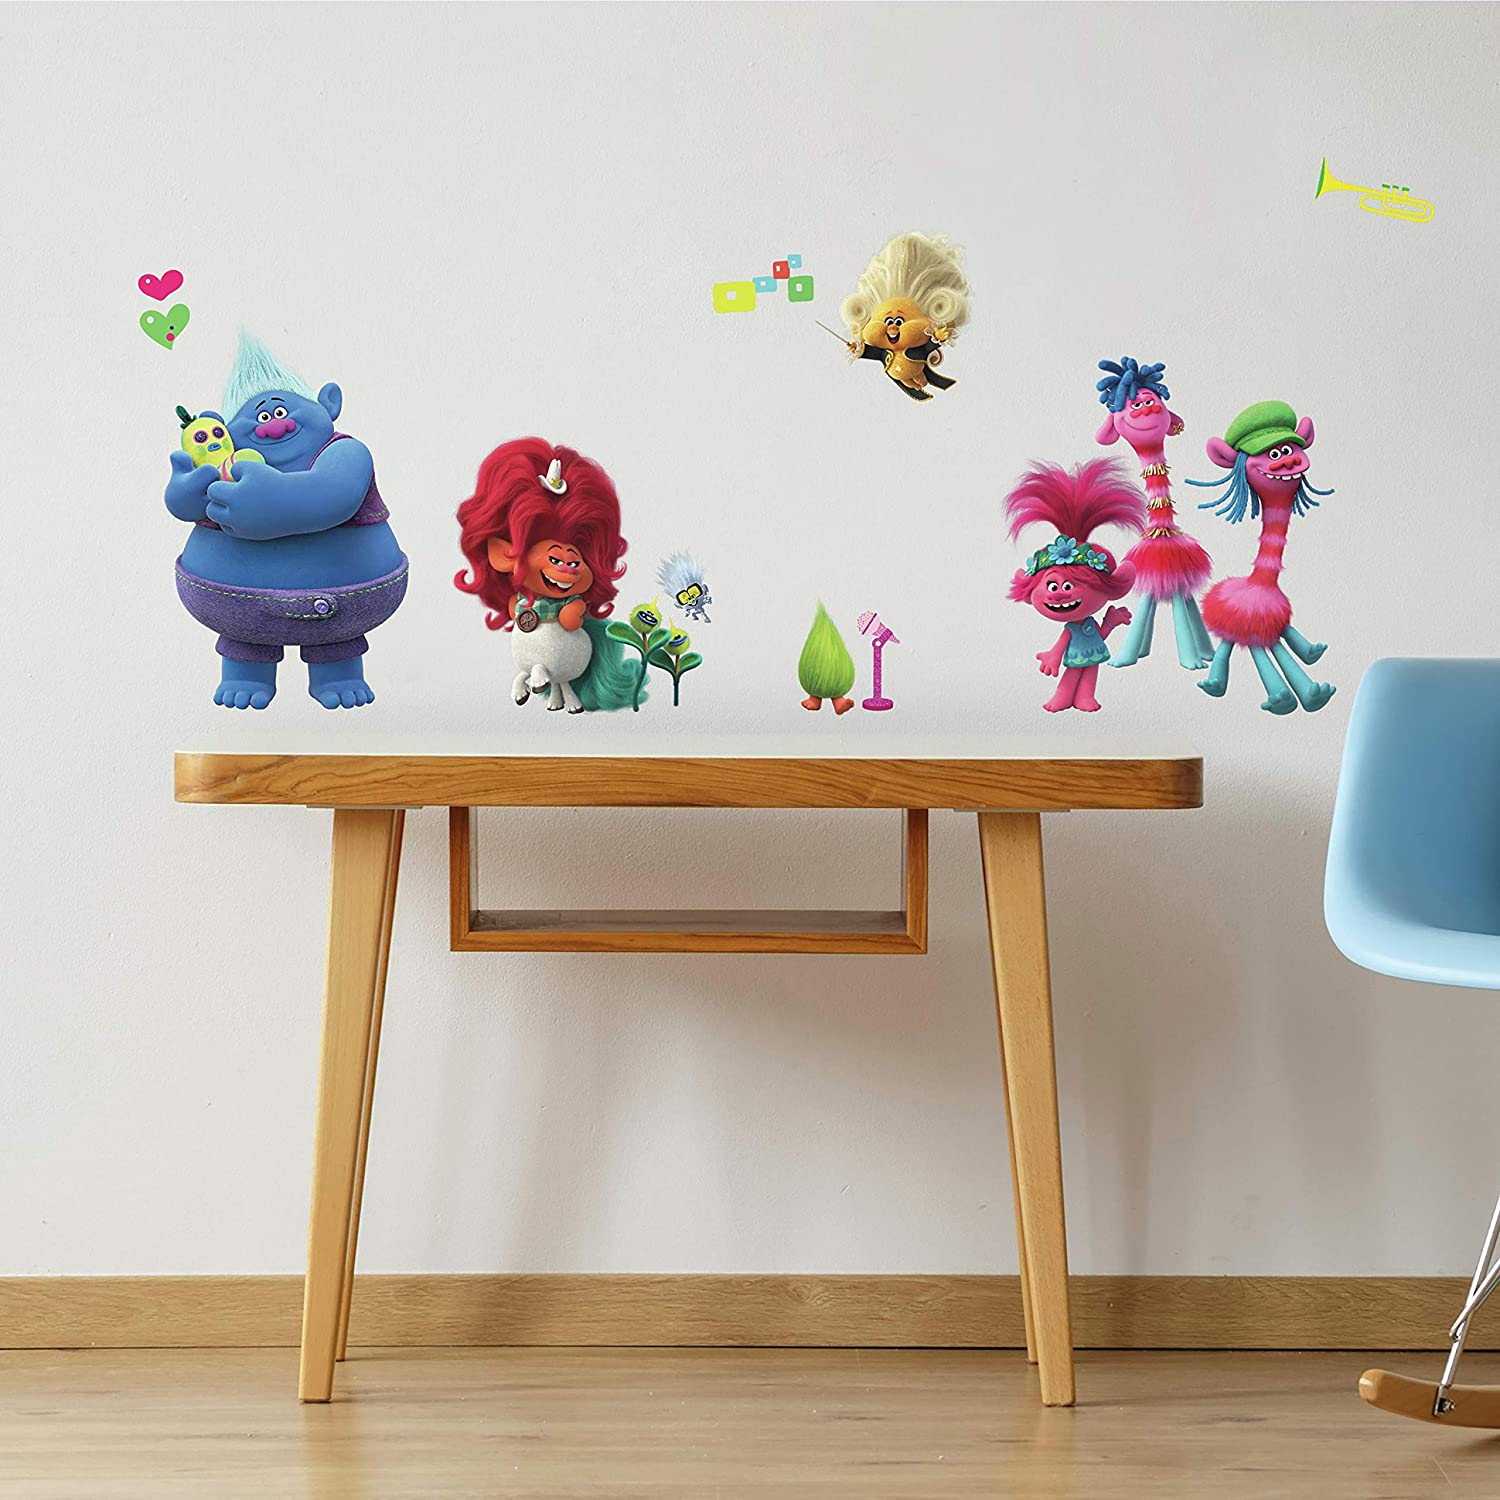 RoomMates Trolls World Tour Peel and Stick Wall Decals